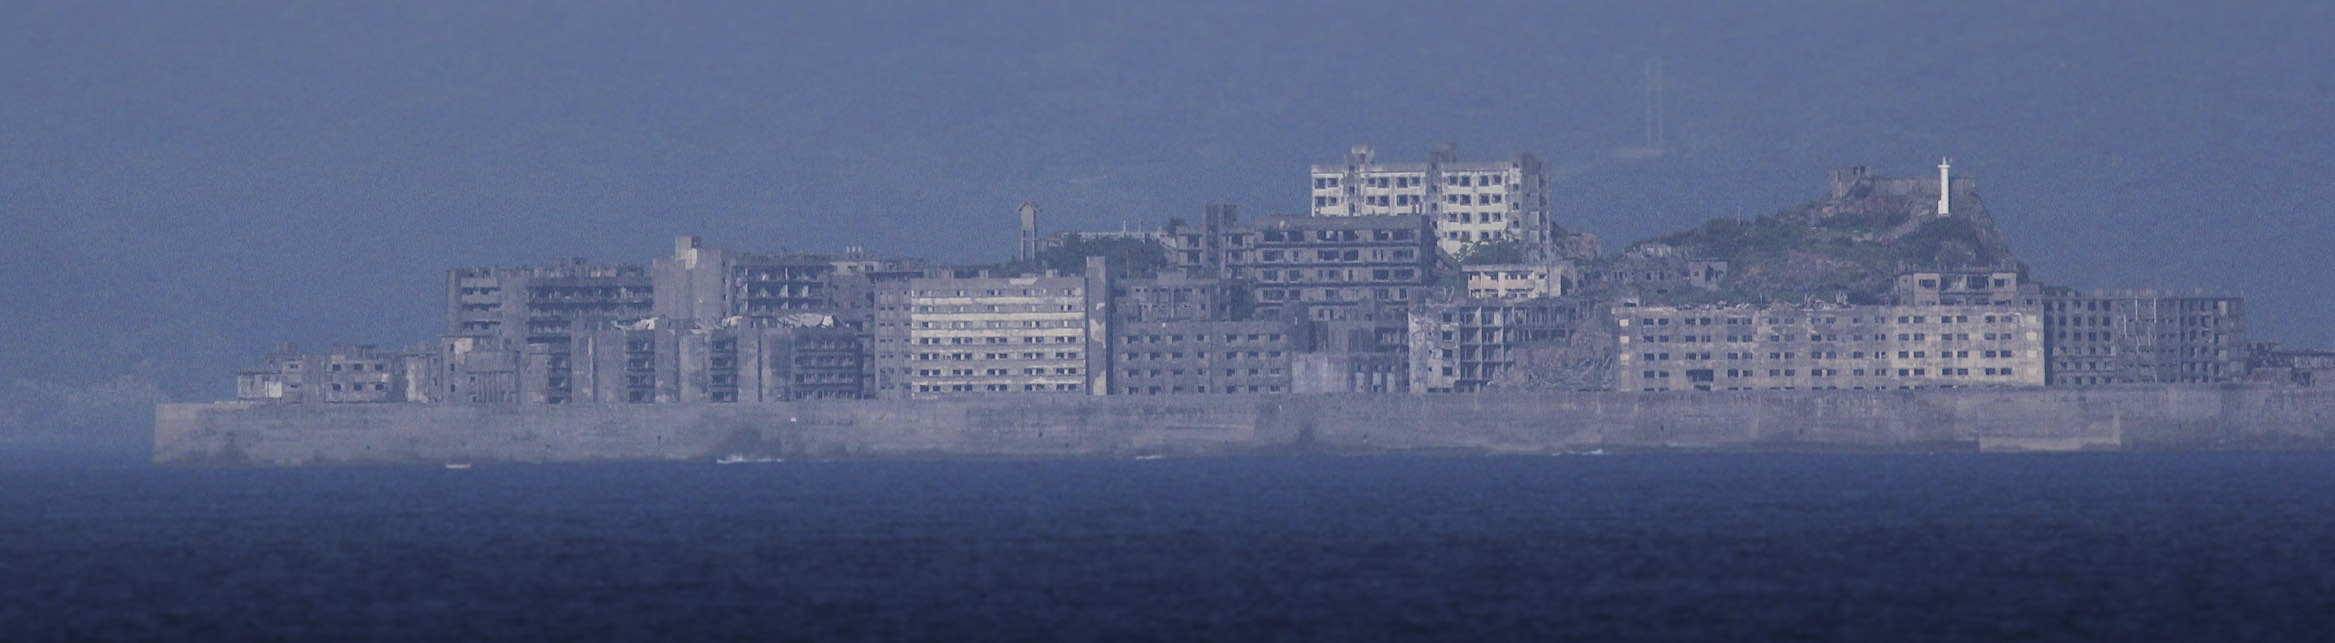 Hashima Island  is an abandoned island lying about 15 kilometers (9 miles) from the city of Nagasaki.  The island's most notable features are its abandoned concrete buildings, undisturbed except by nature, and the surrounding sea wall.